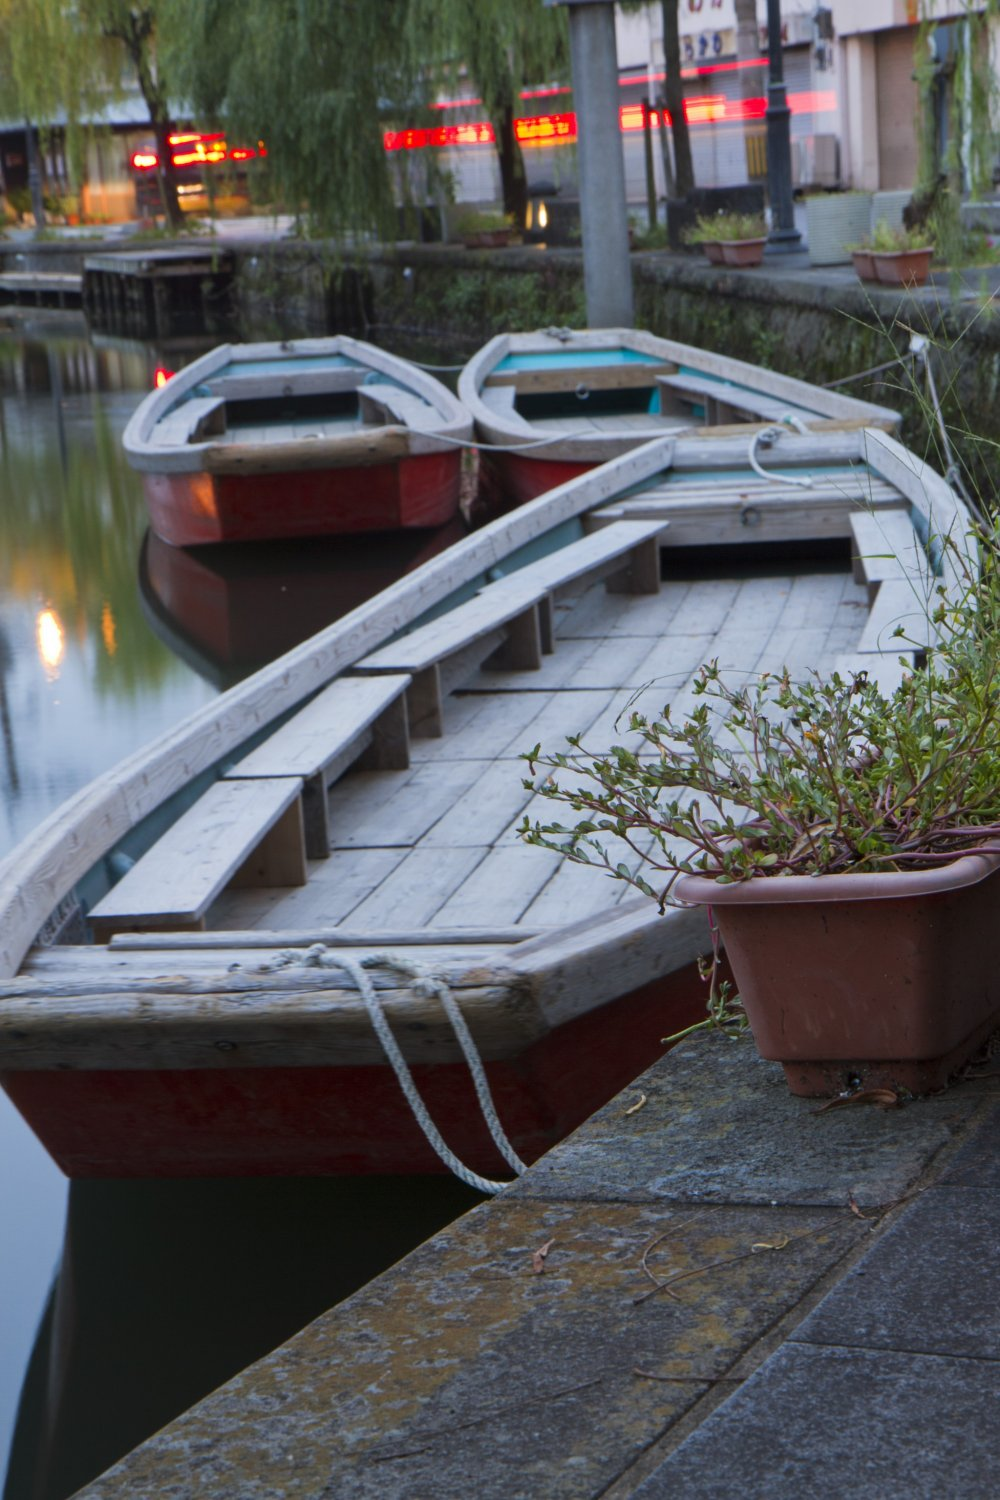 Donkobune, the canal boats of Yanagawa